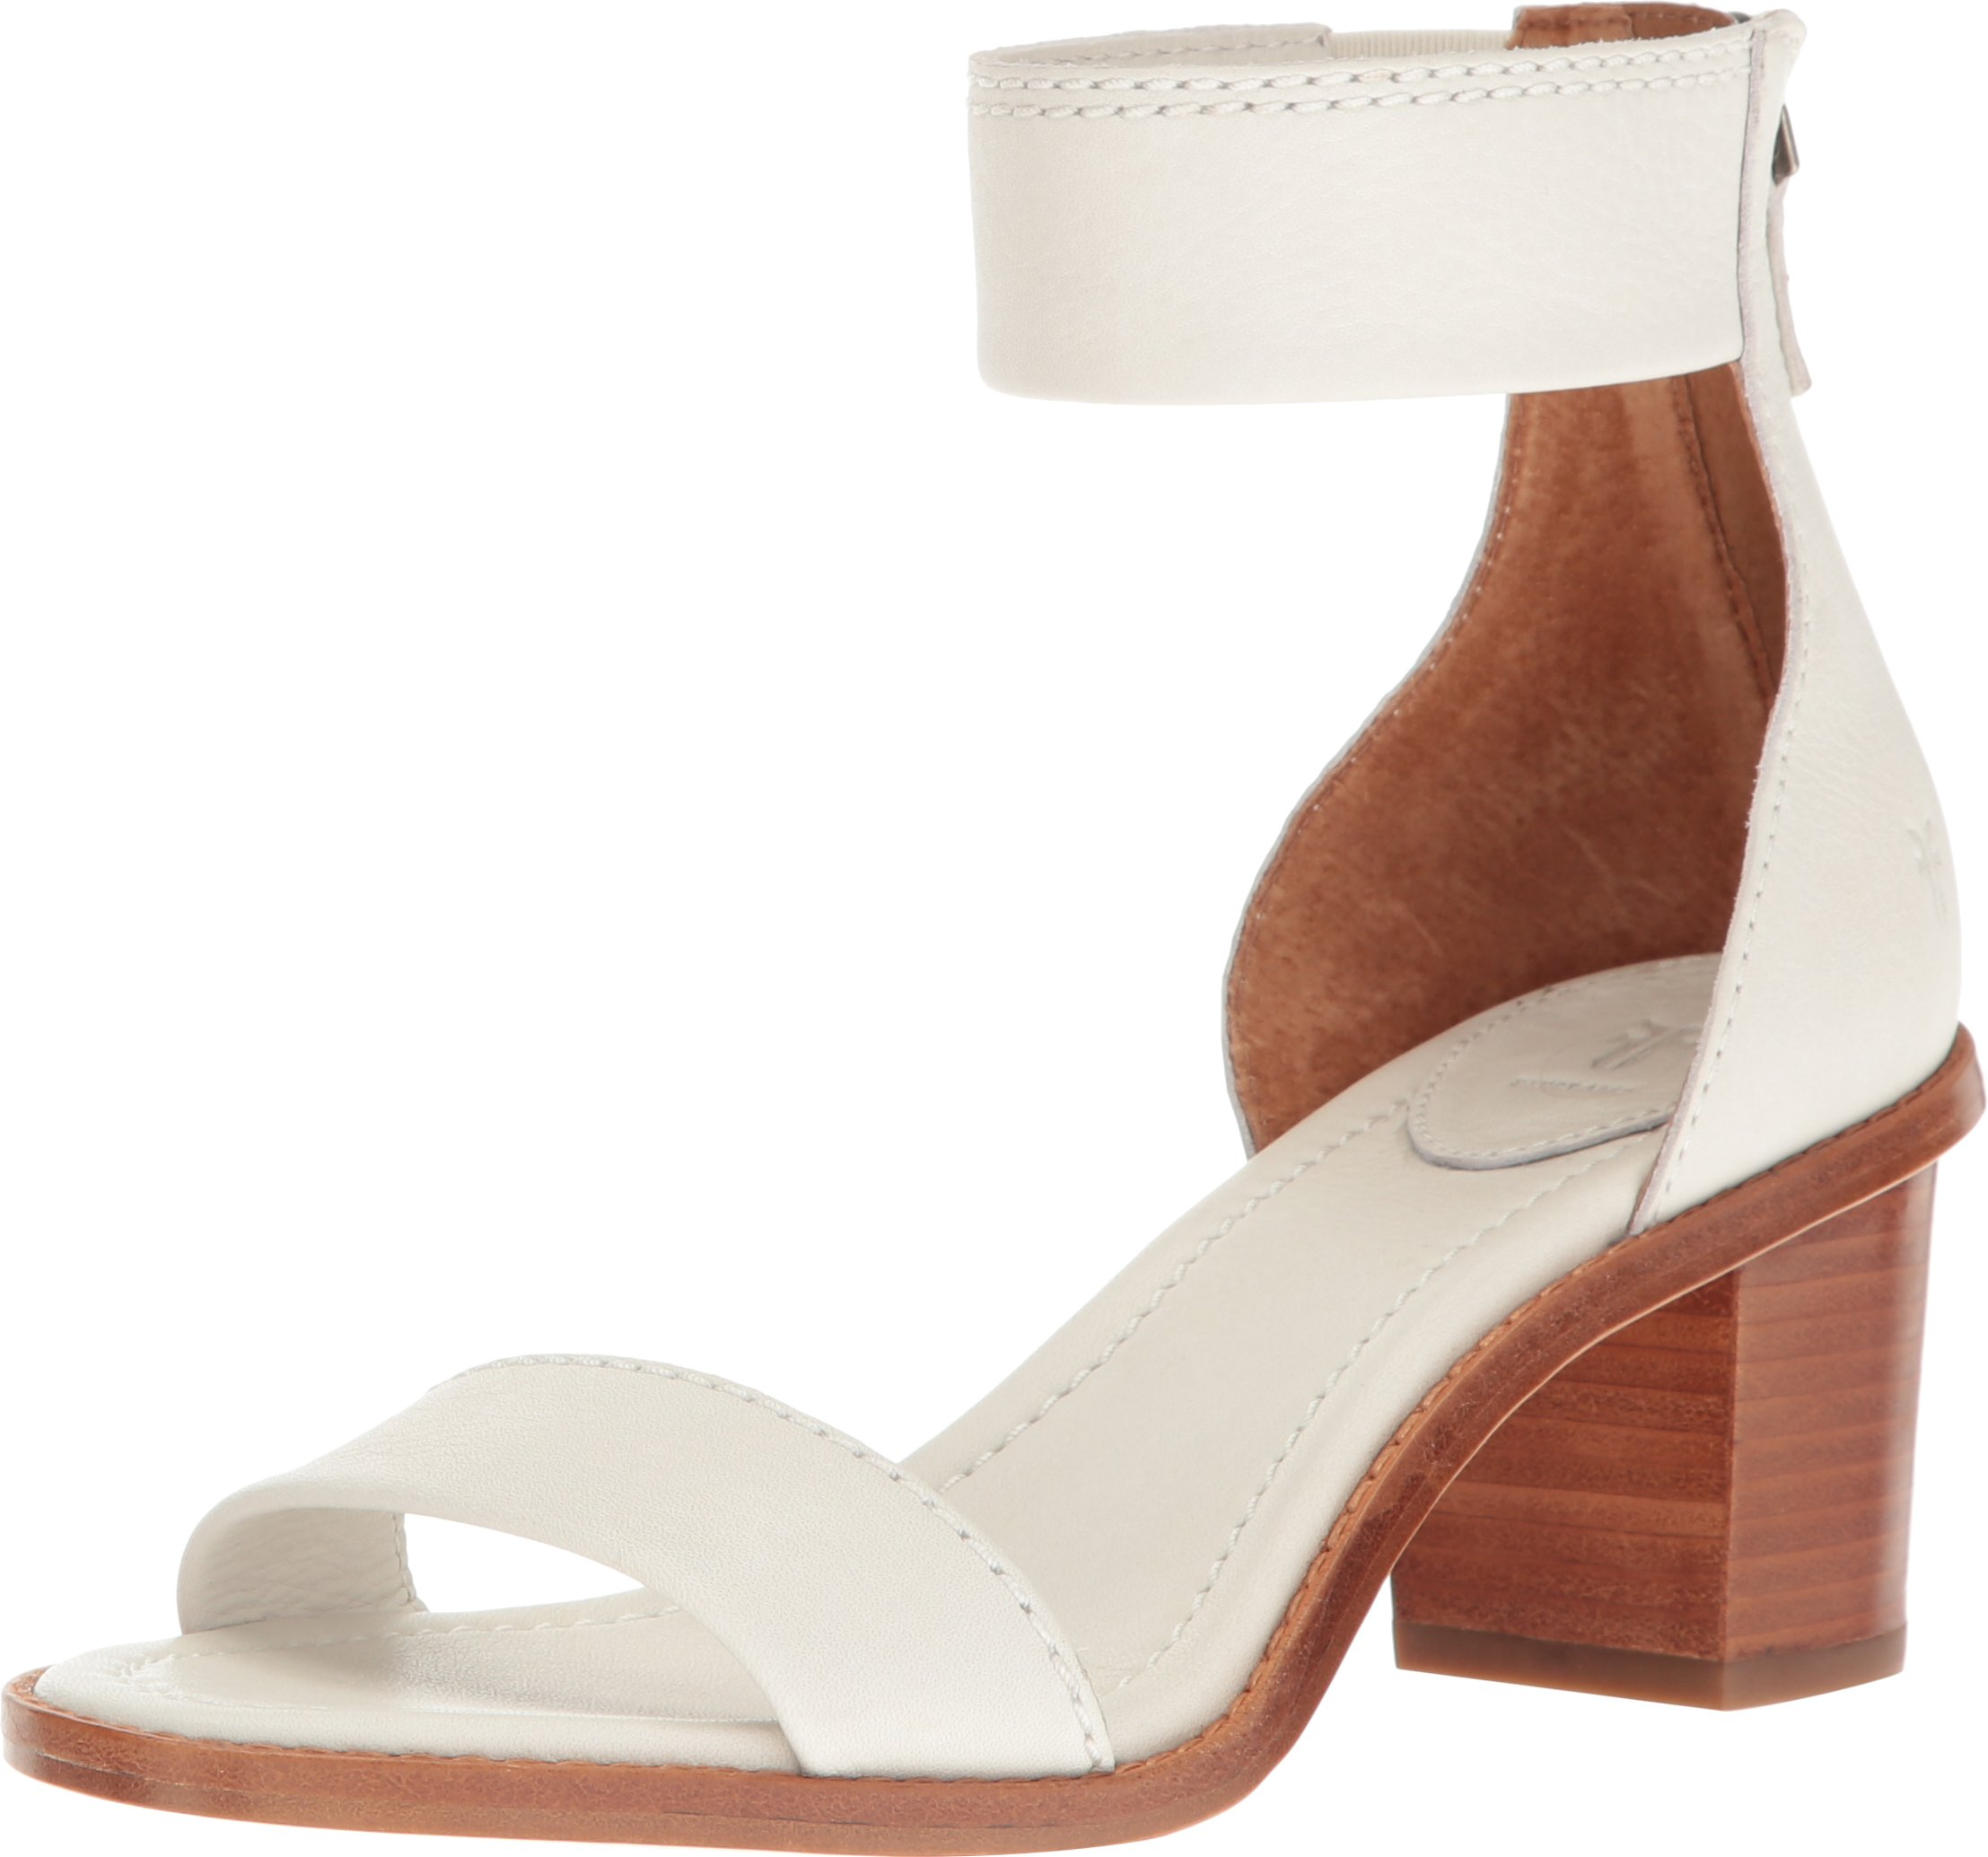 FRYE Women's Brielle Back Zip Dress Sandal, White, 7 M US by FRYE